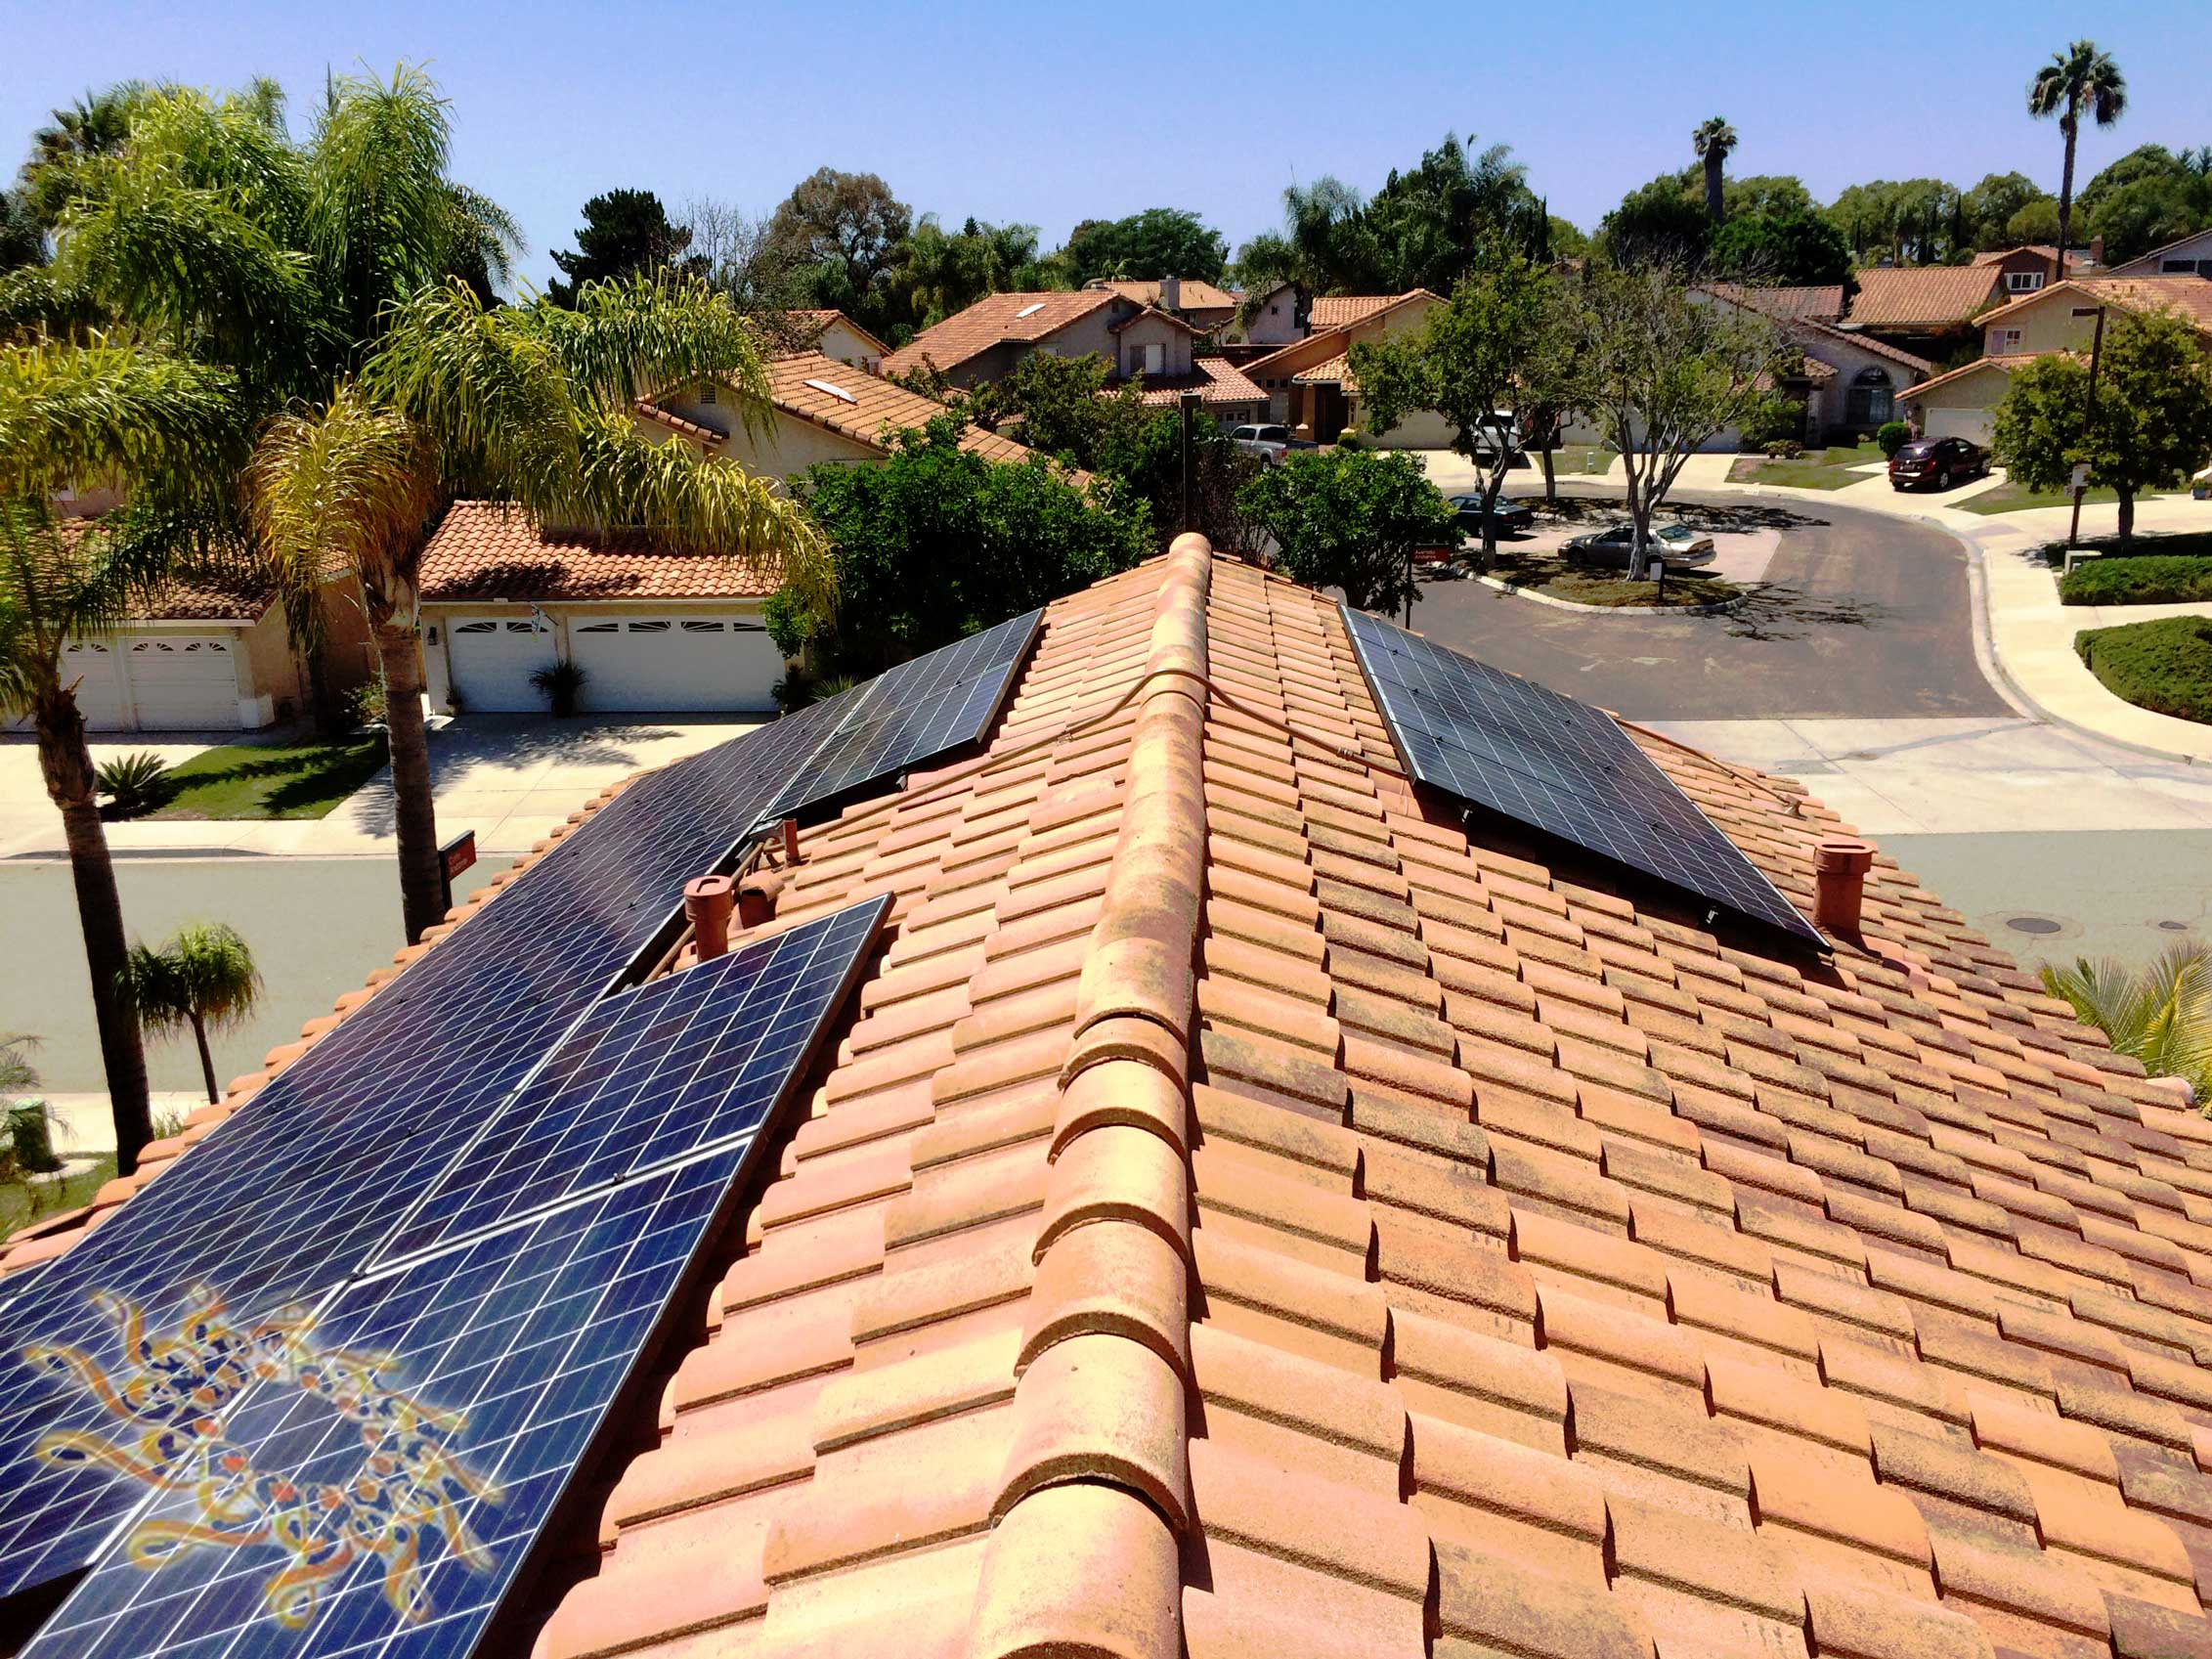 One of the Top Solar Companies in Oceanside, CA? This Happy Customer Thinks So.